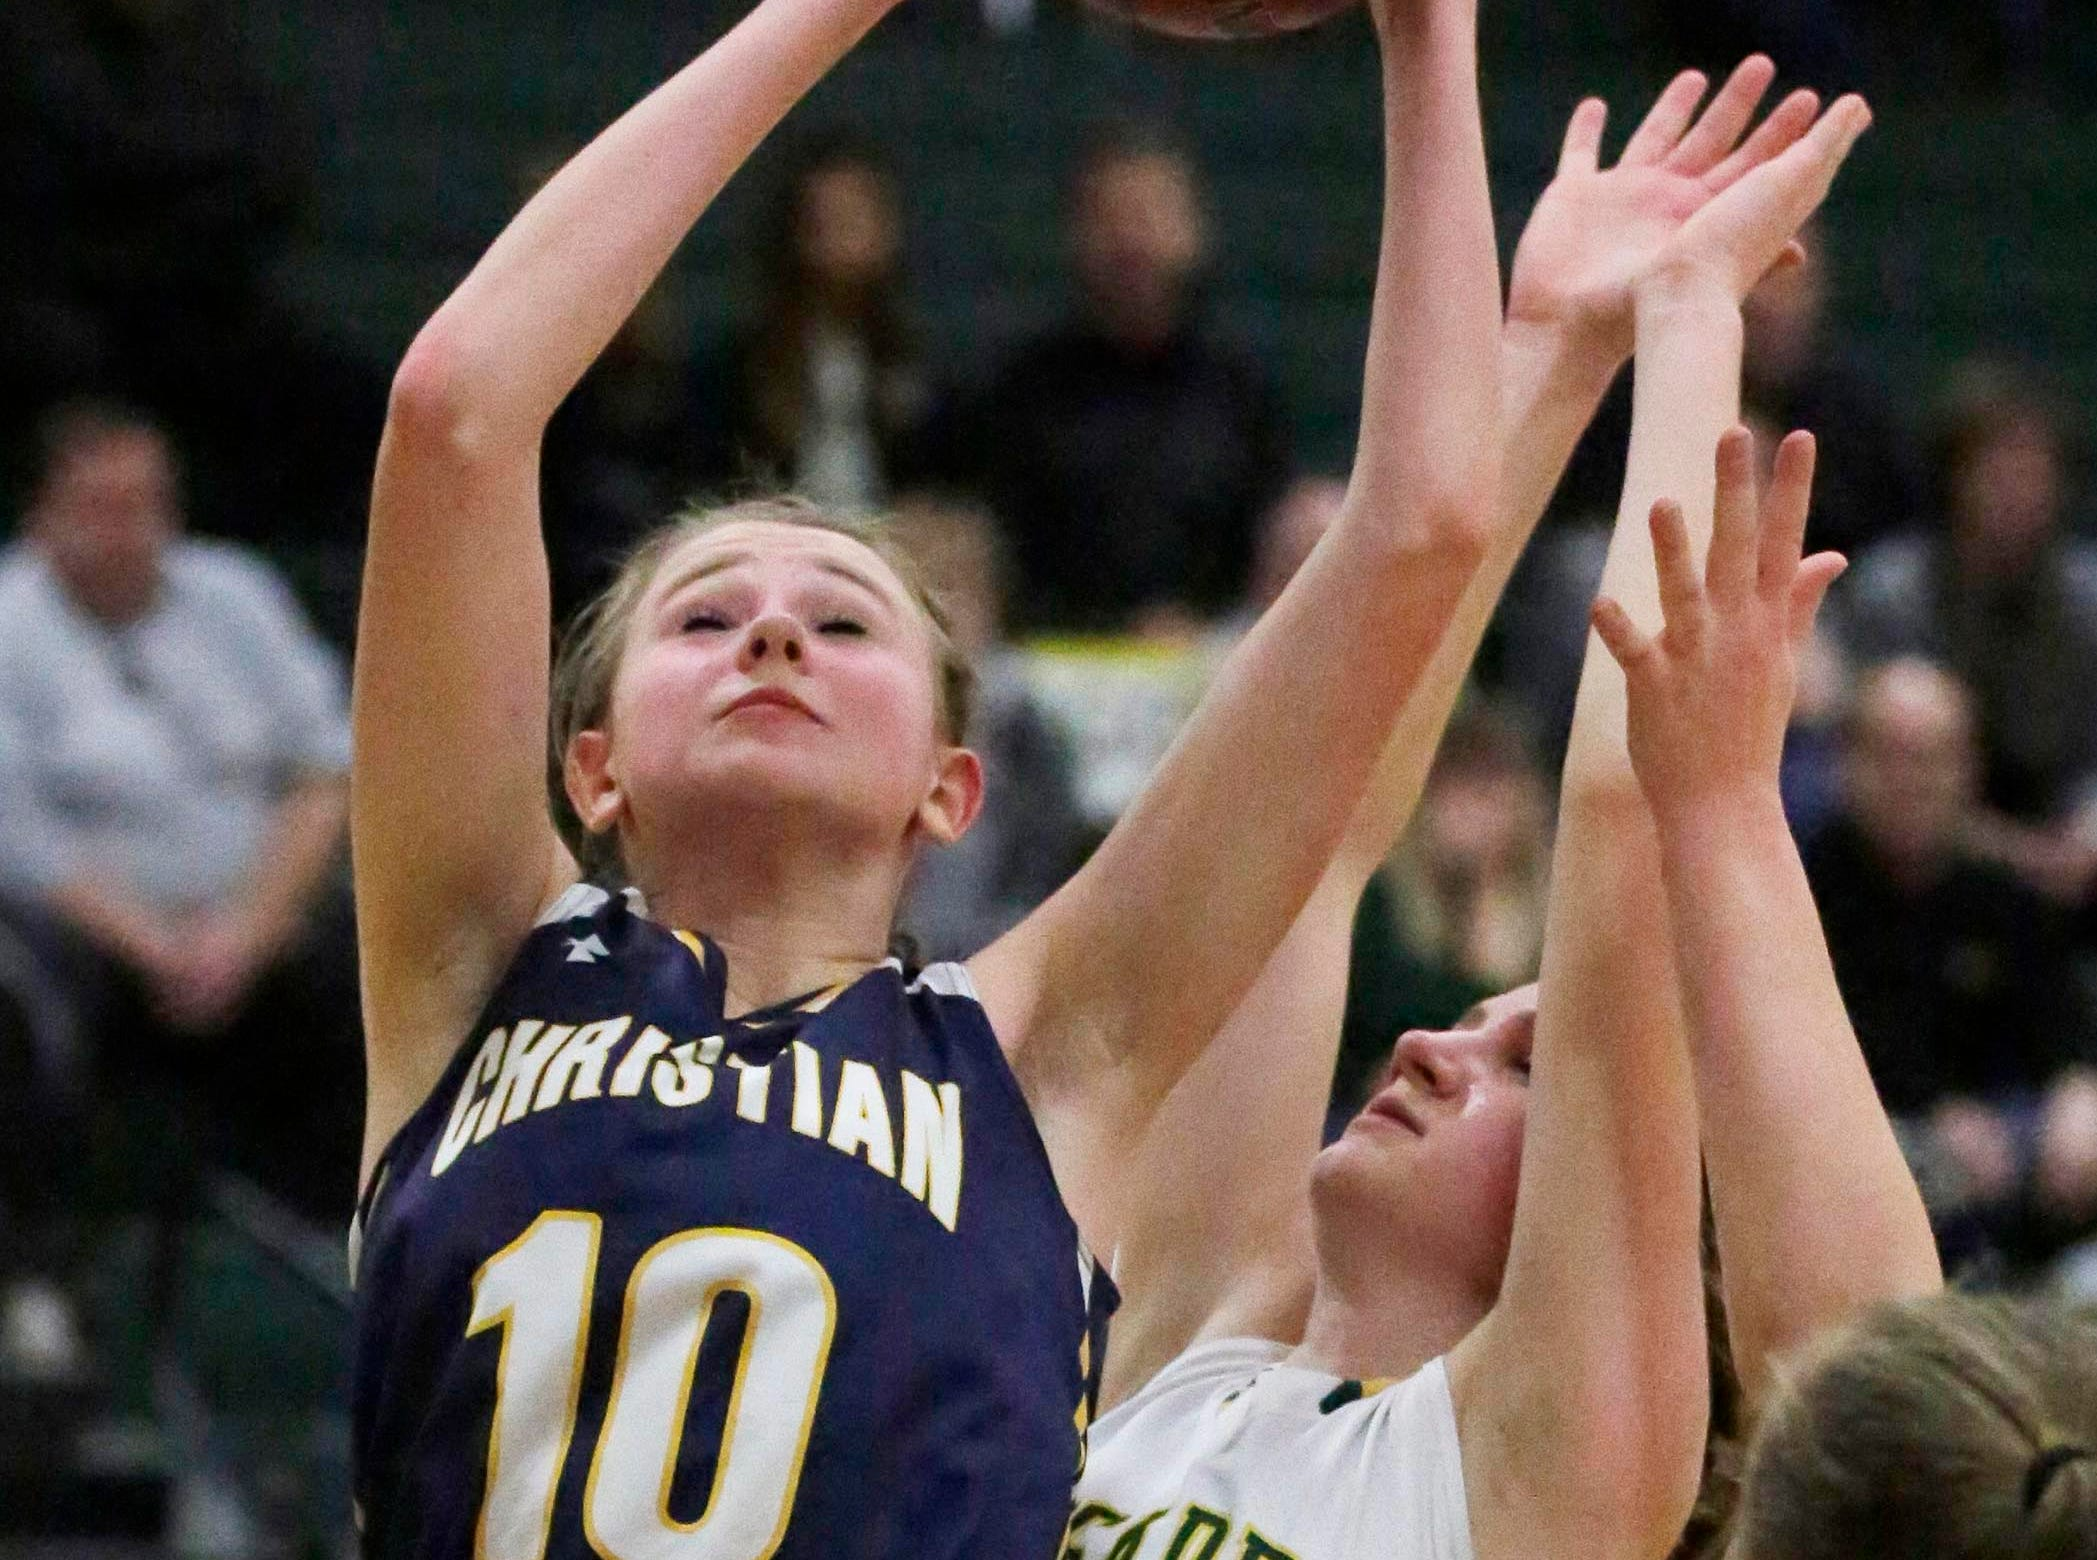 Sheboygan Christian's Maddie Zylstra (10) launches a shot against a Sheboygan Lutheran player at Lutheran, Thursday, January 24, 2019, in Sheboygan, Wis.